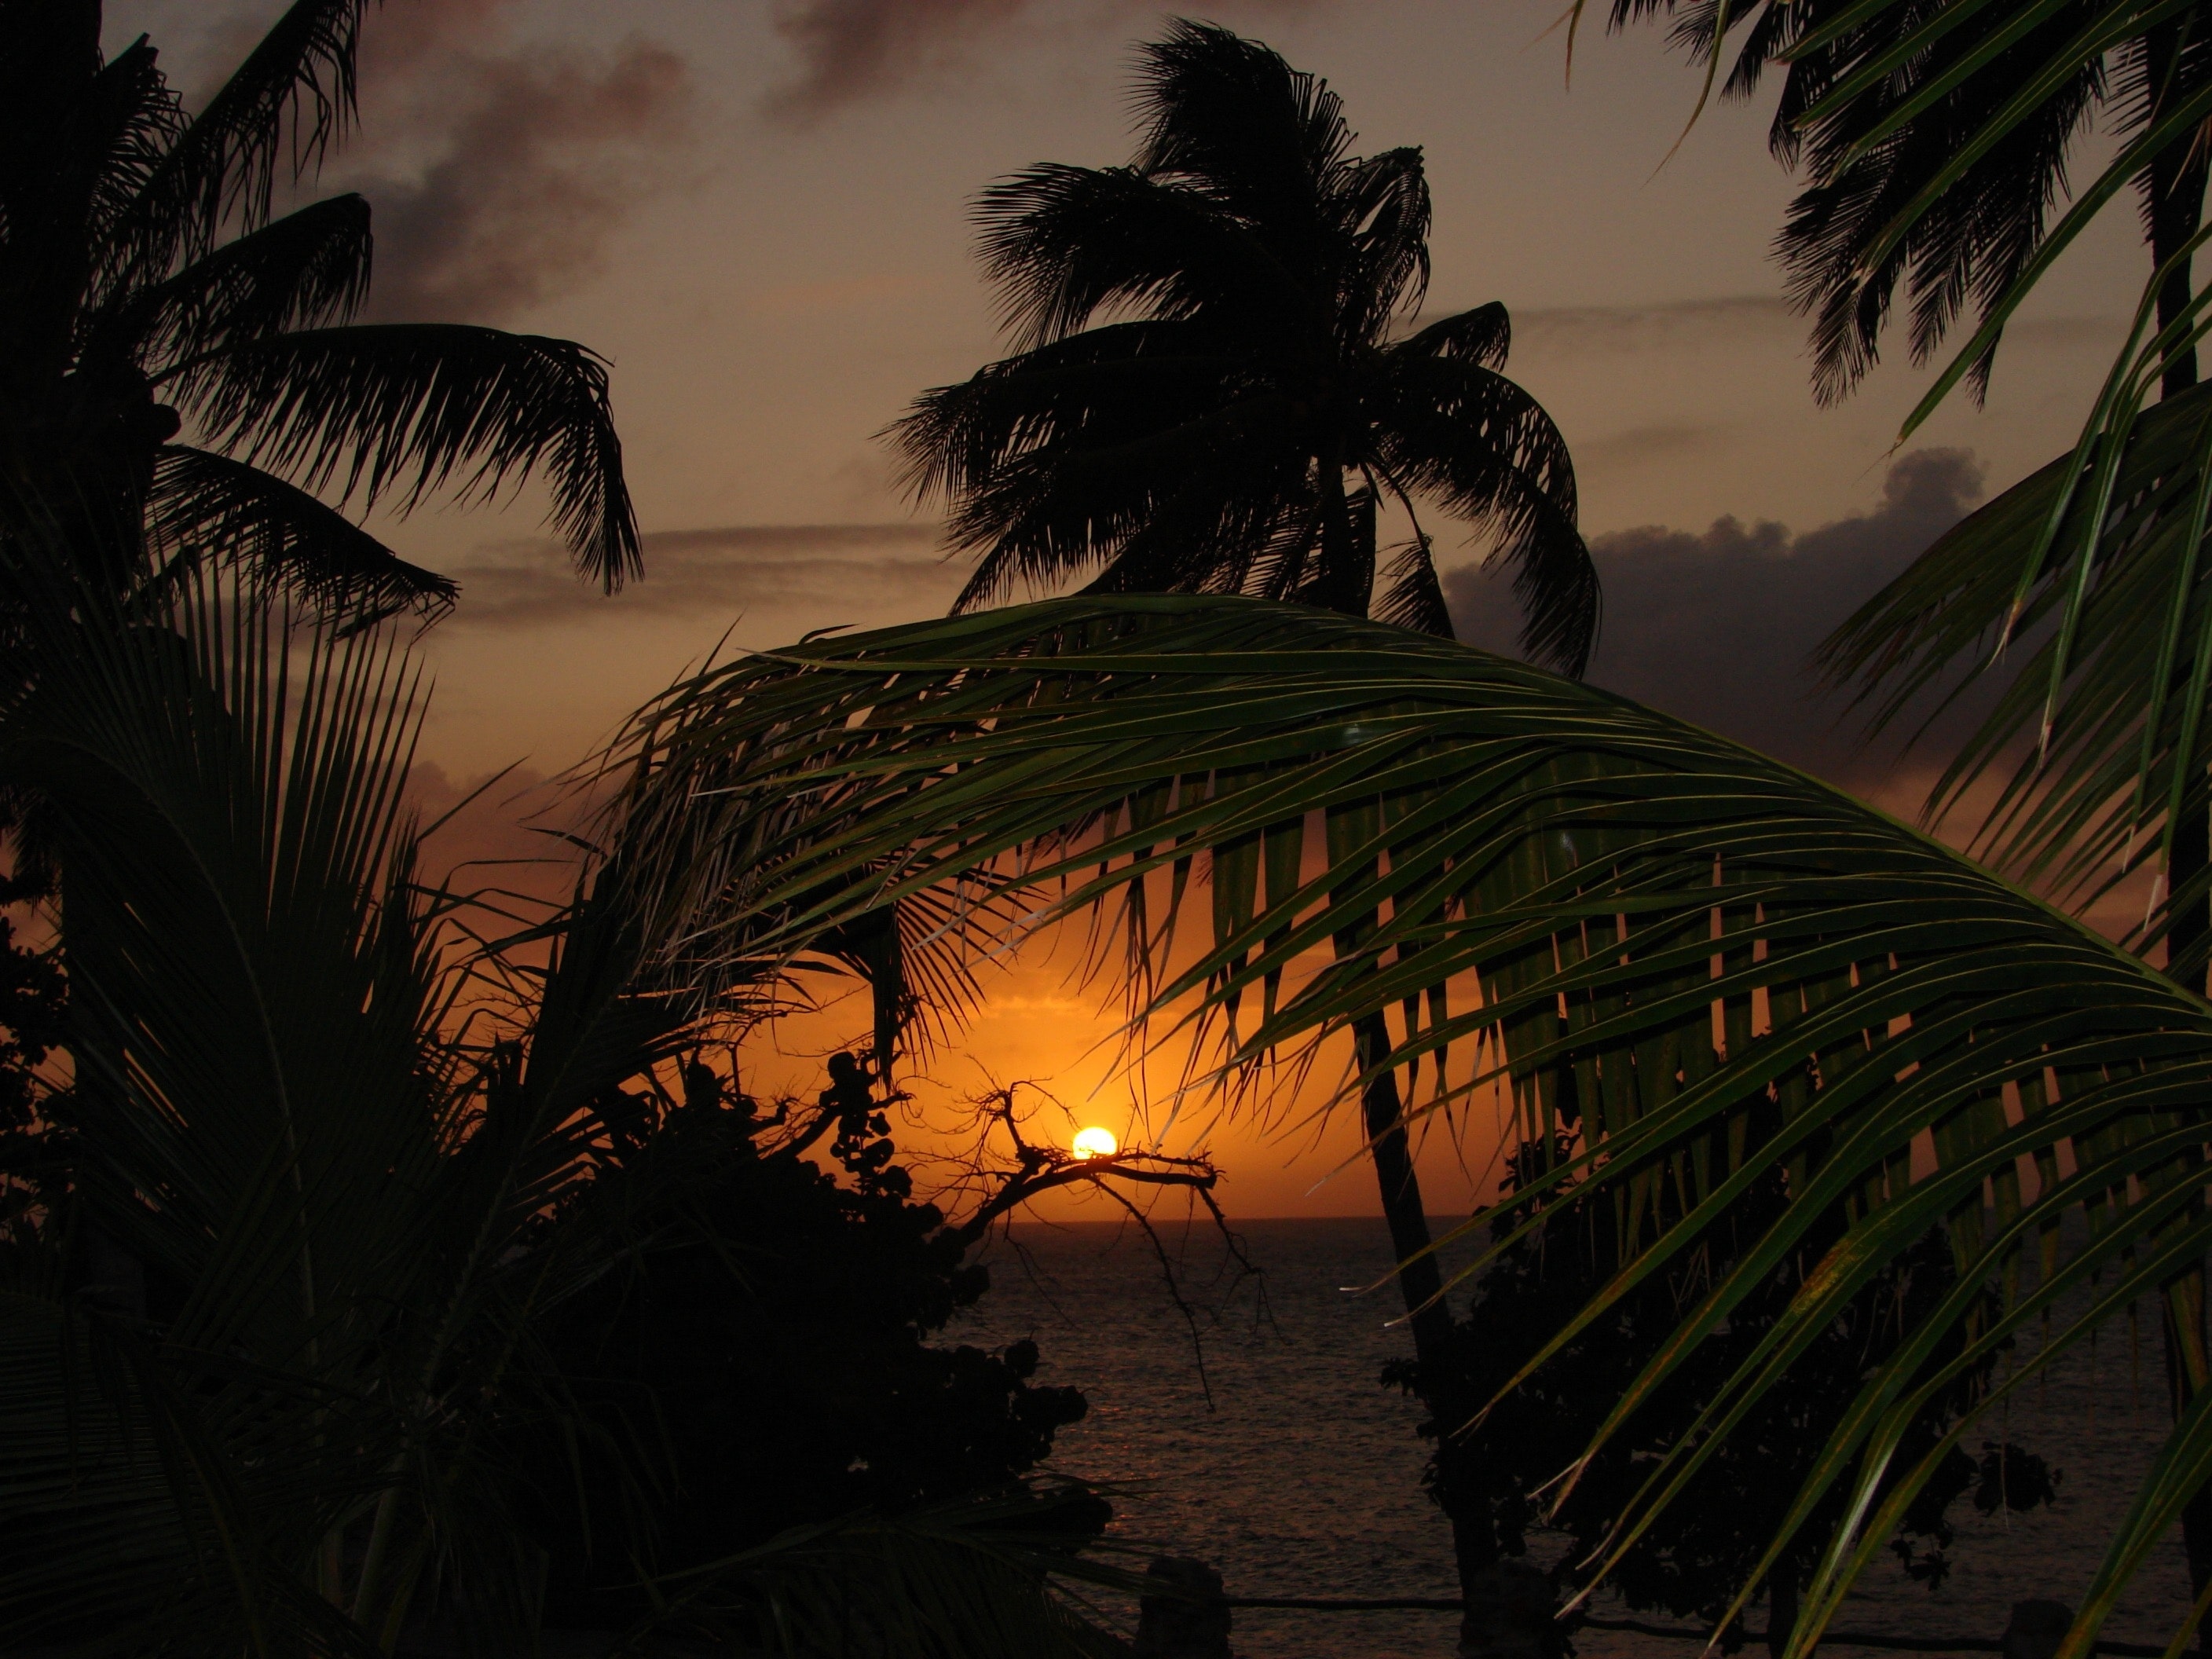 CoconutTree Besides Body of Water during Sunset, Beach, Seaside, Water, Tropical, HQ Photo